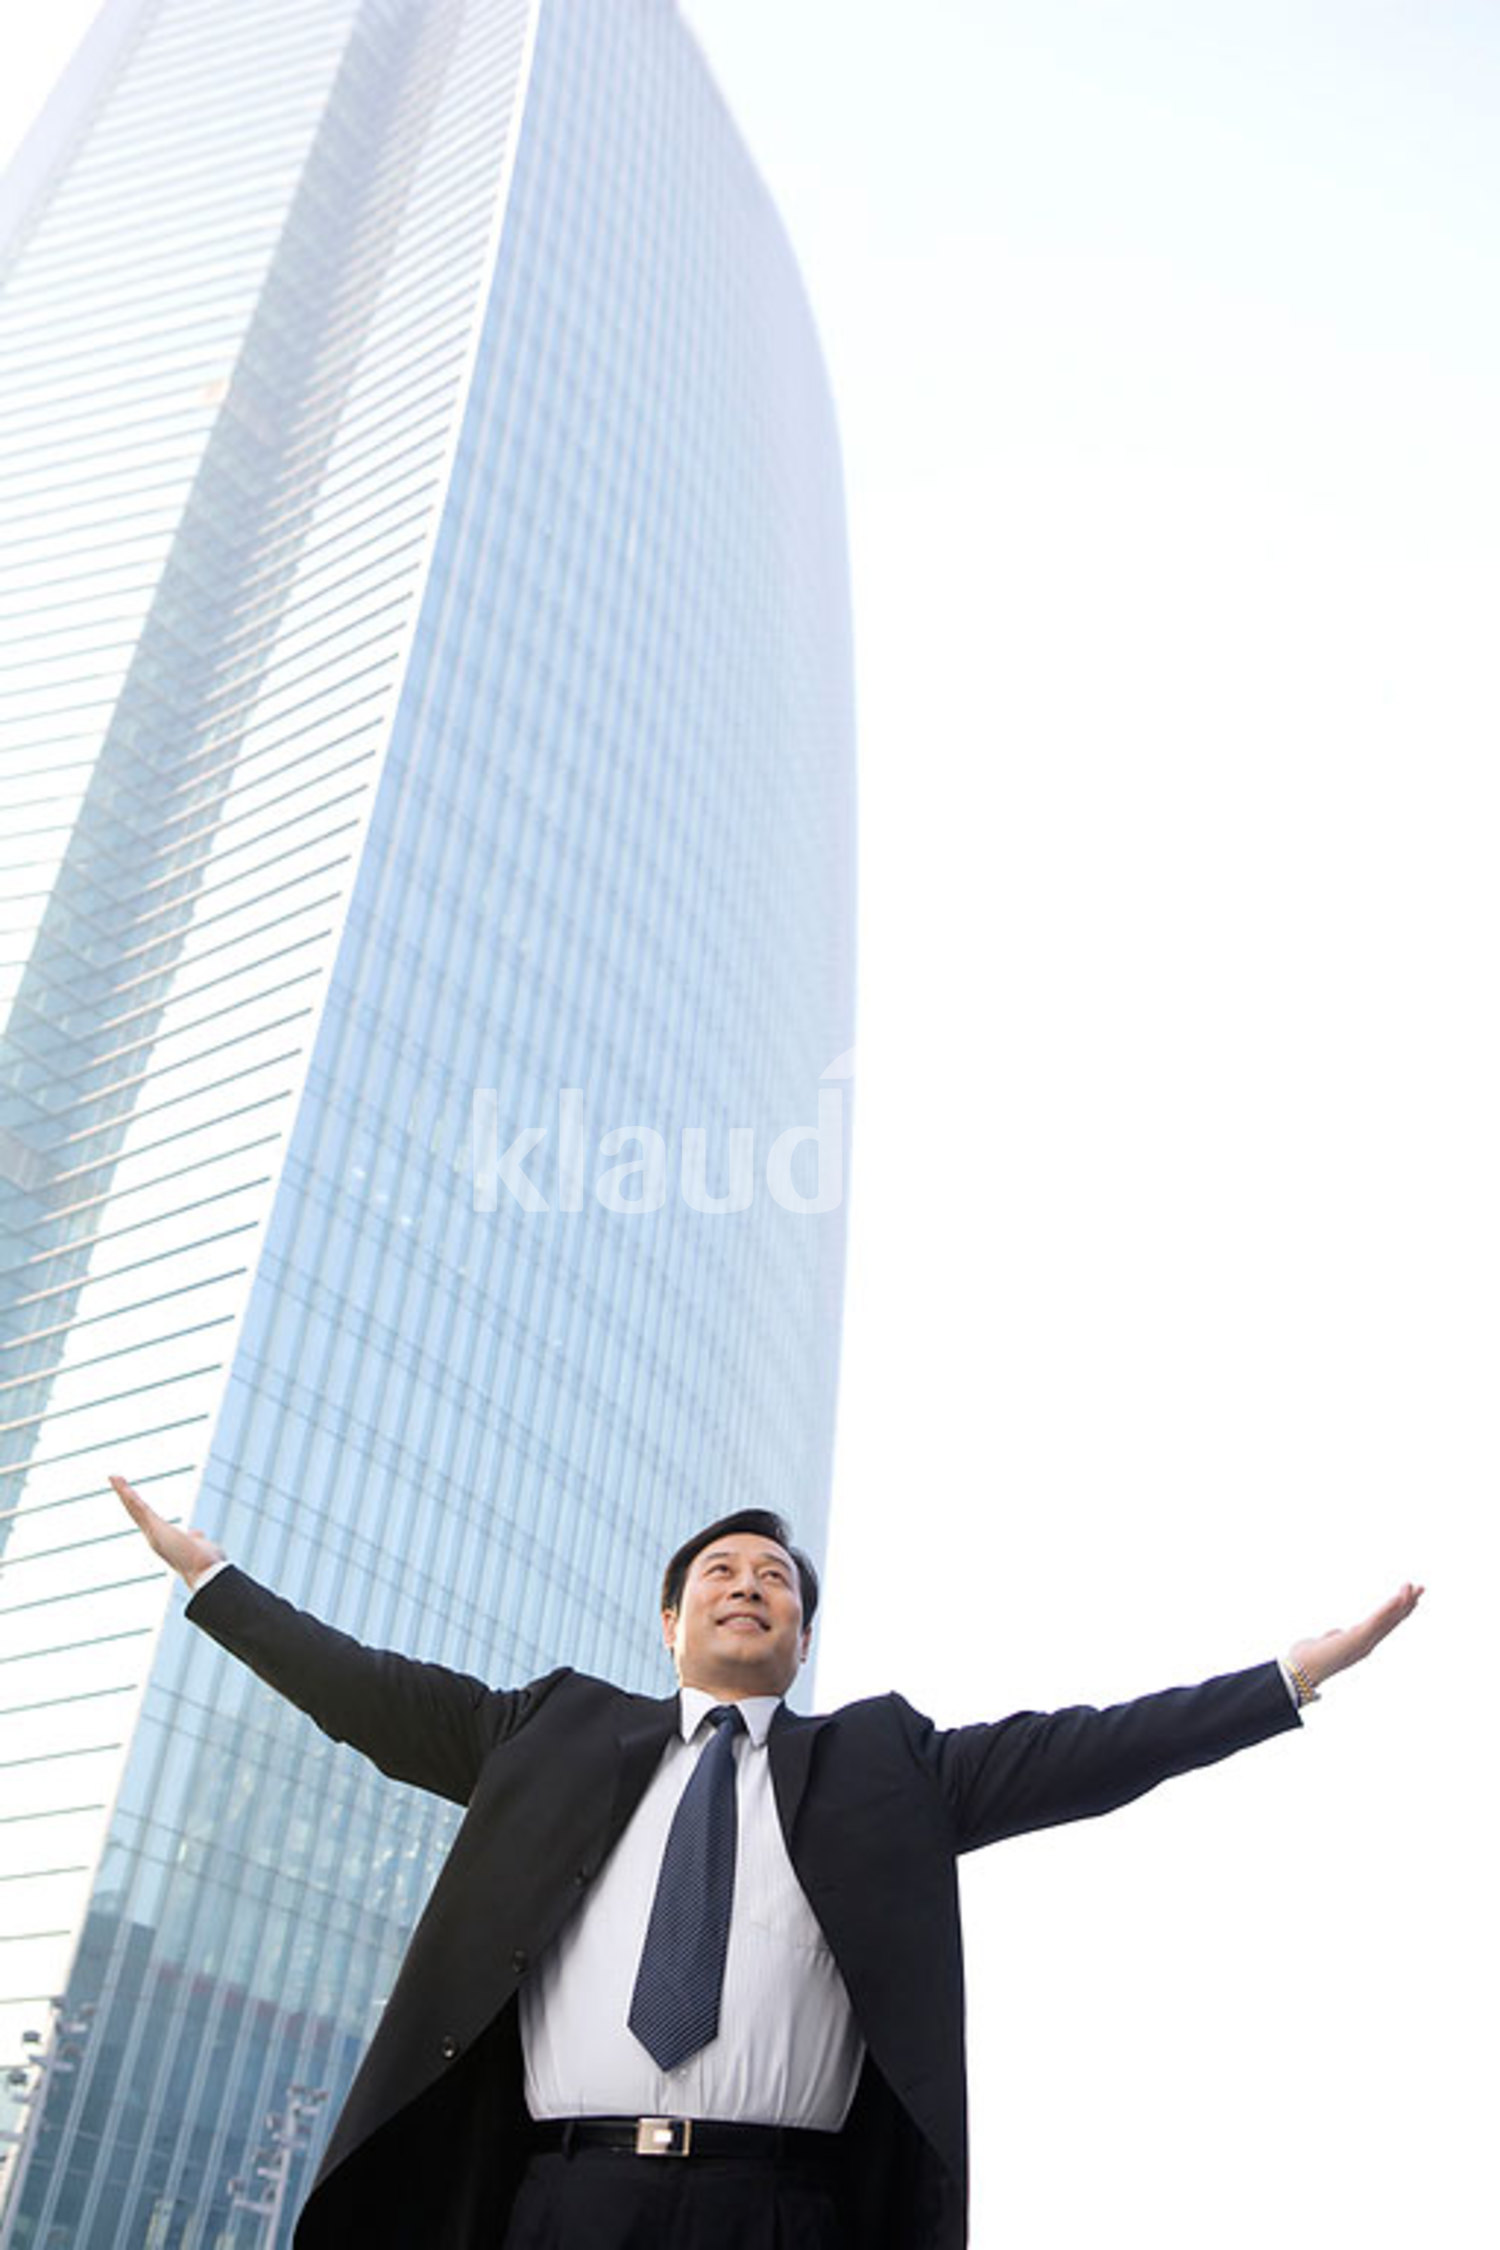 Chinese business Leader With Arms Outstretched